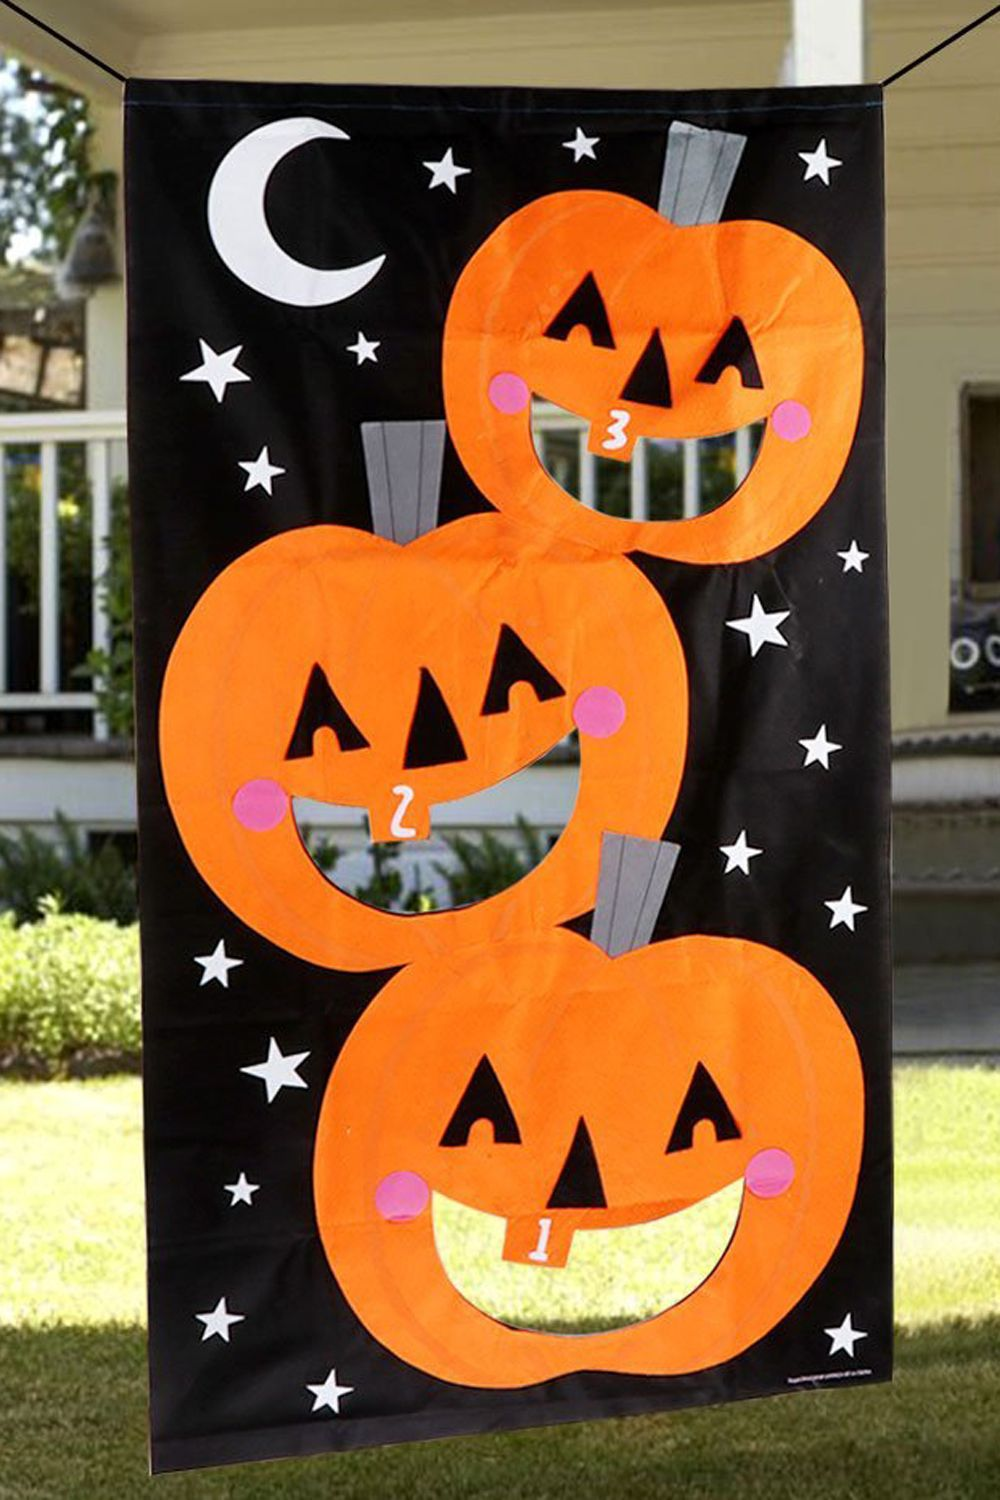 28 fun halloween party games for kids 2018 - diy ideas for halloween